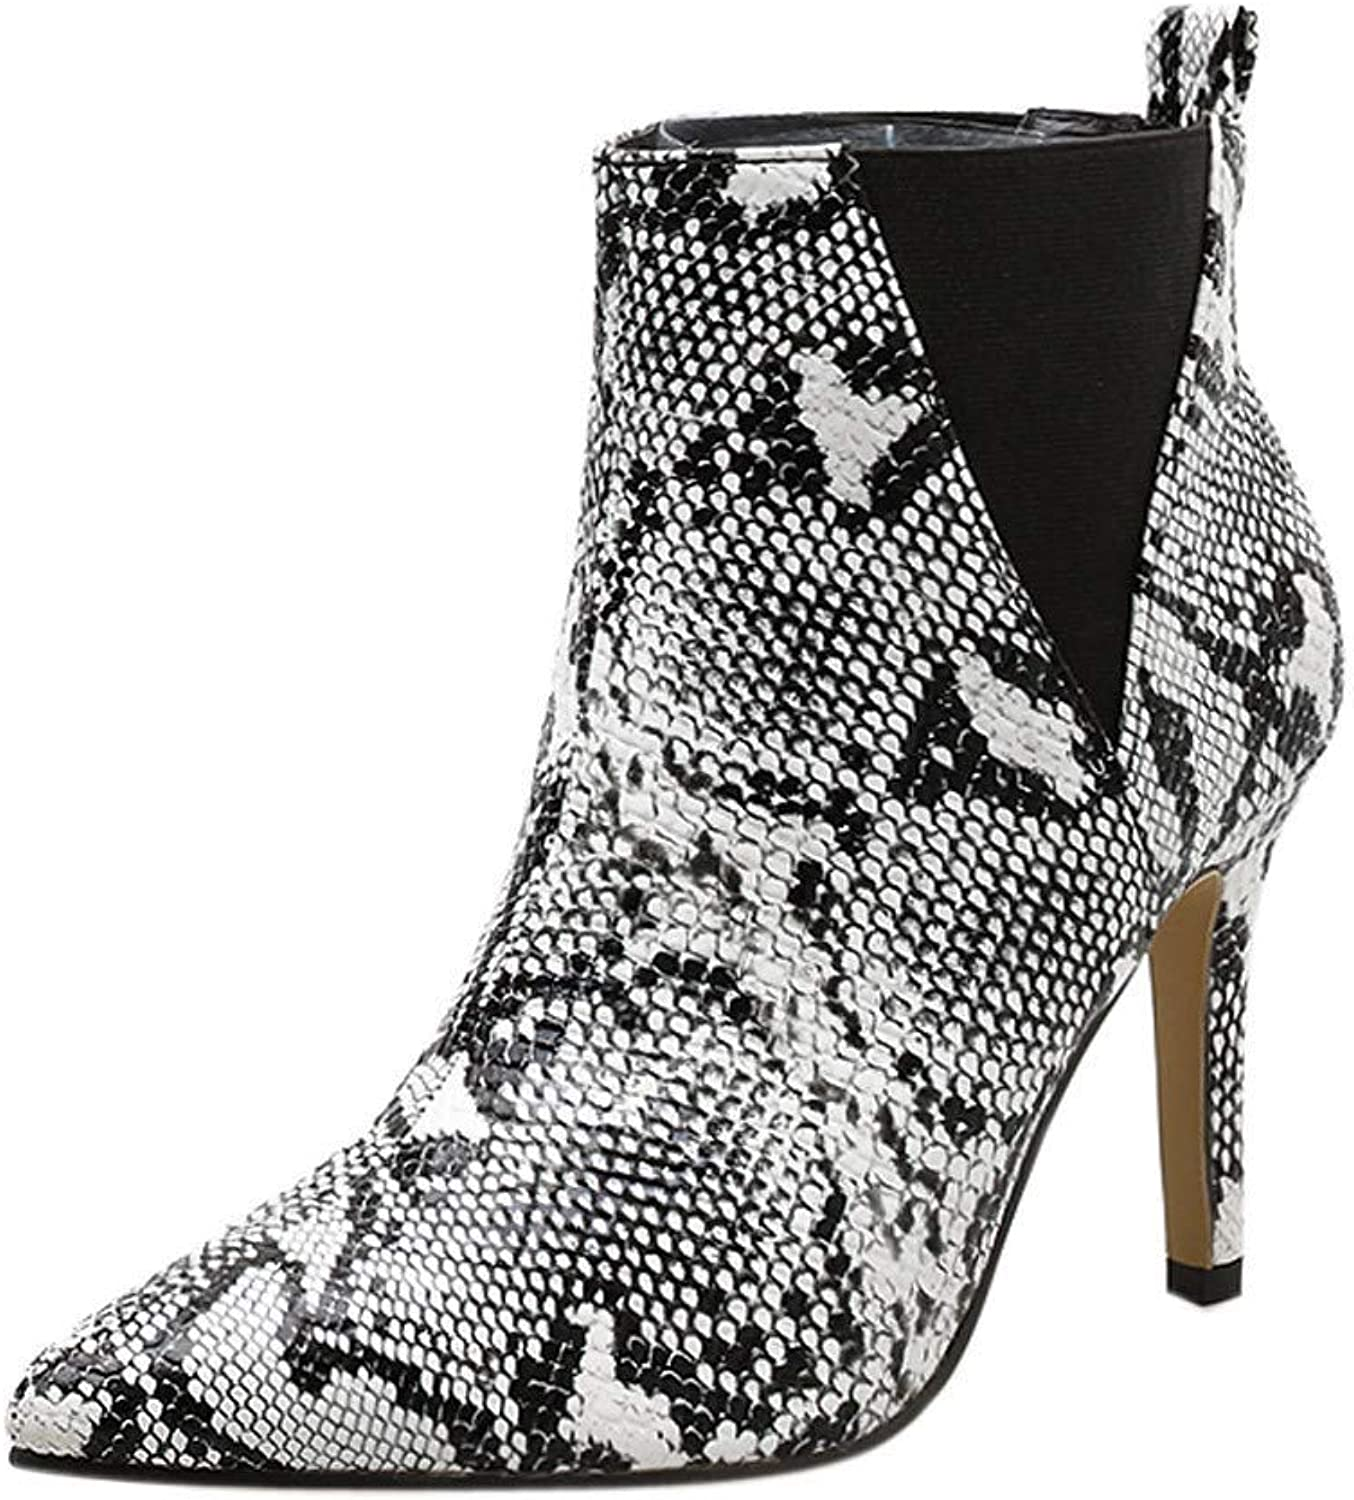 Serpentine Leather Stilettos Ankle Boots Women Sexy Pointed Toe shoes